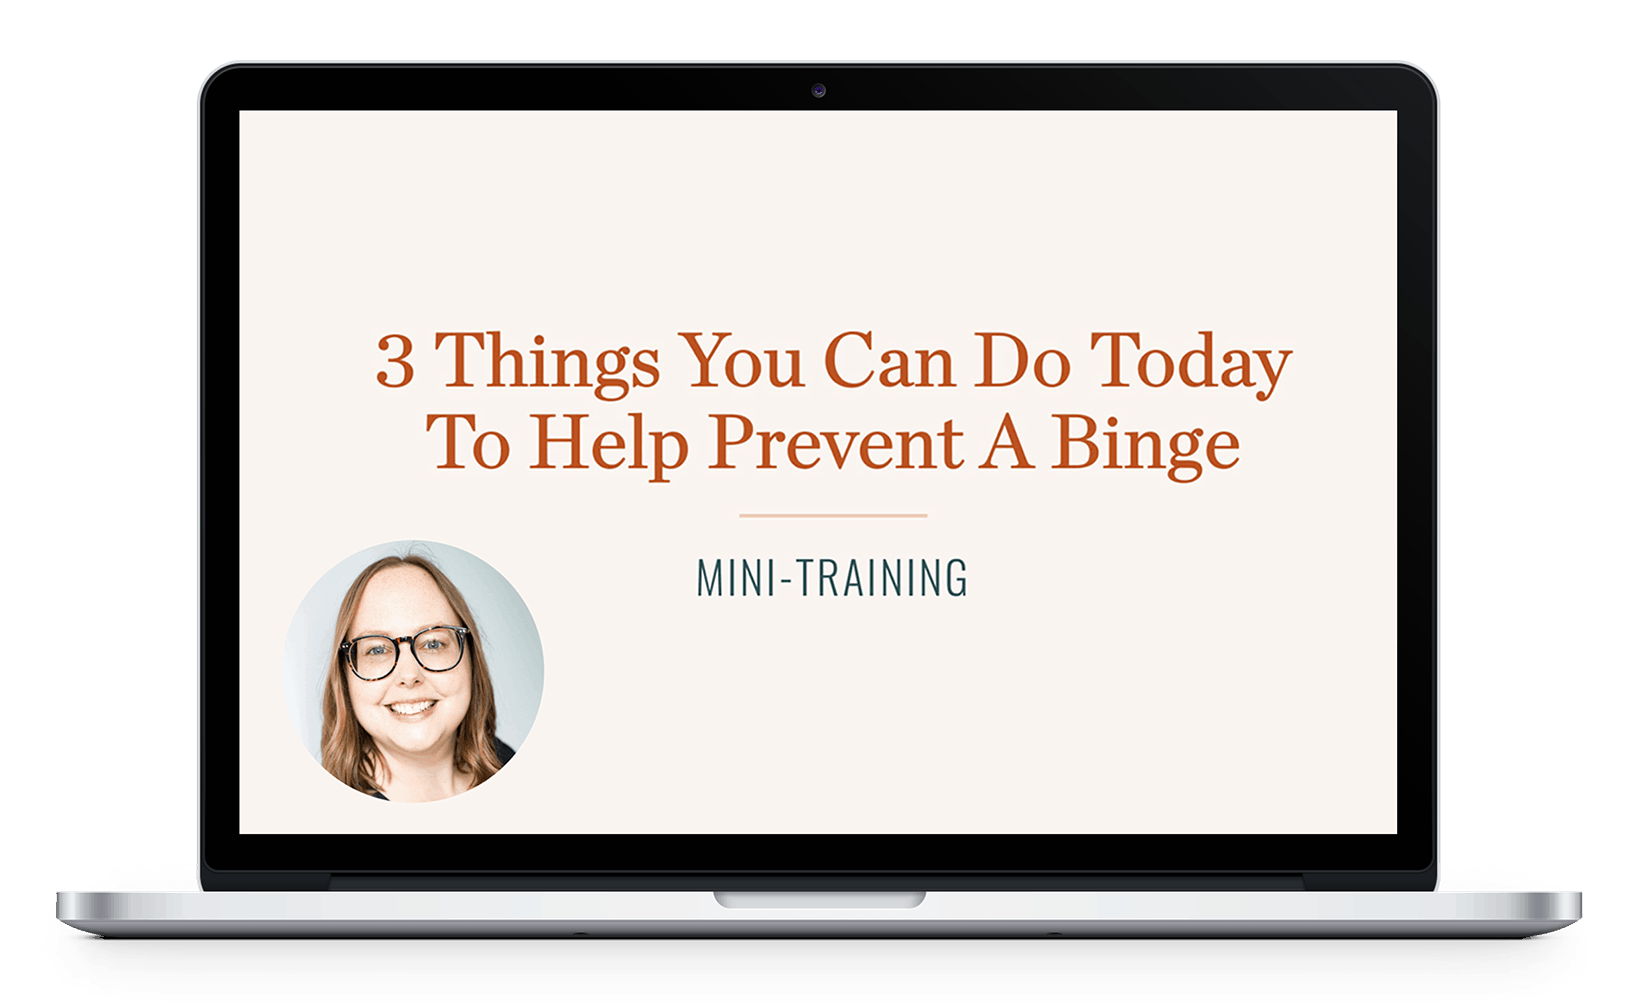 A laptop screen showing 3 things you can do today to help prevent a binge training with Dietitian Nina Mills